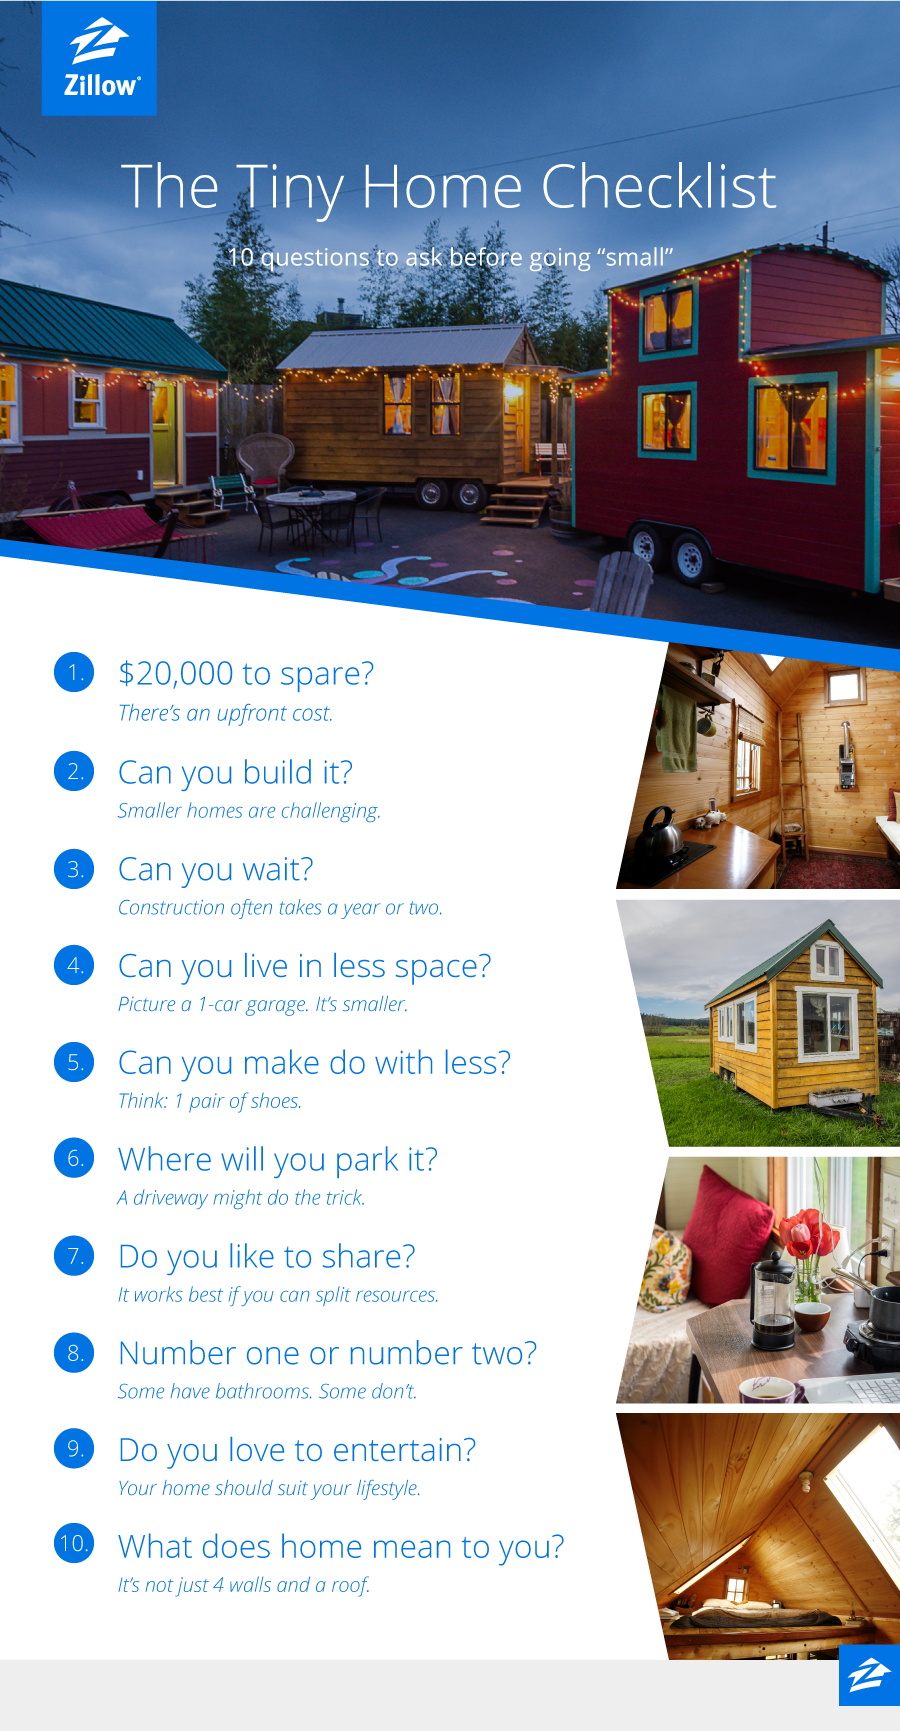 The Tiny Home Checklist